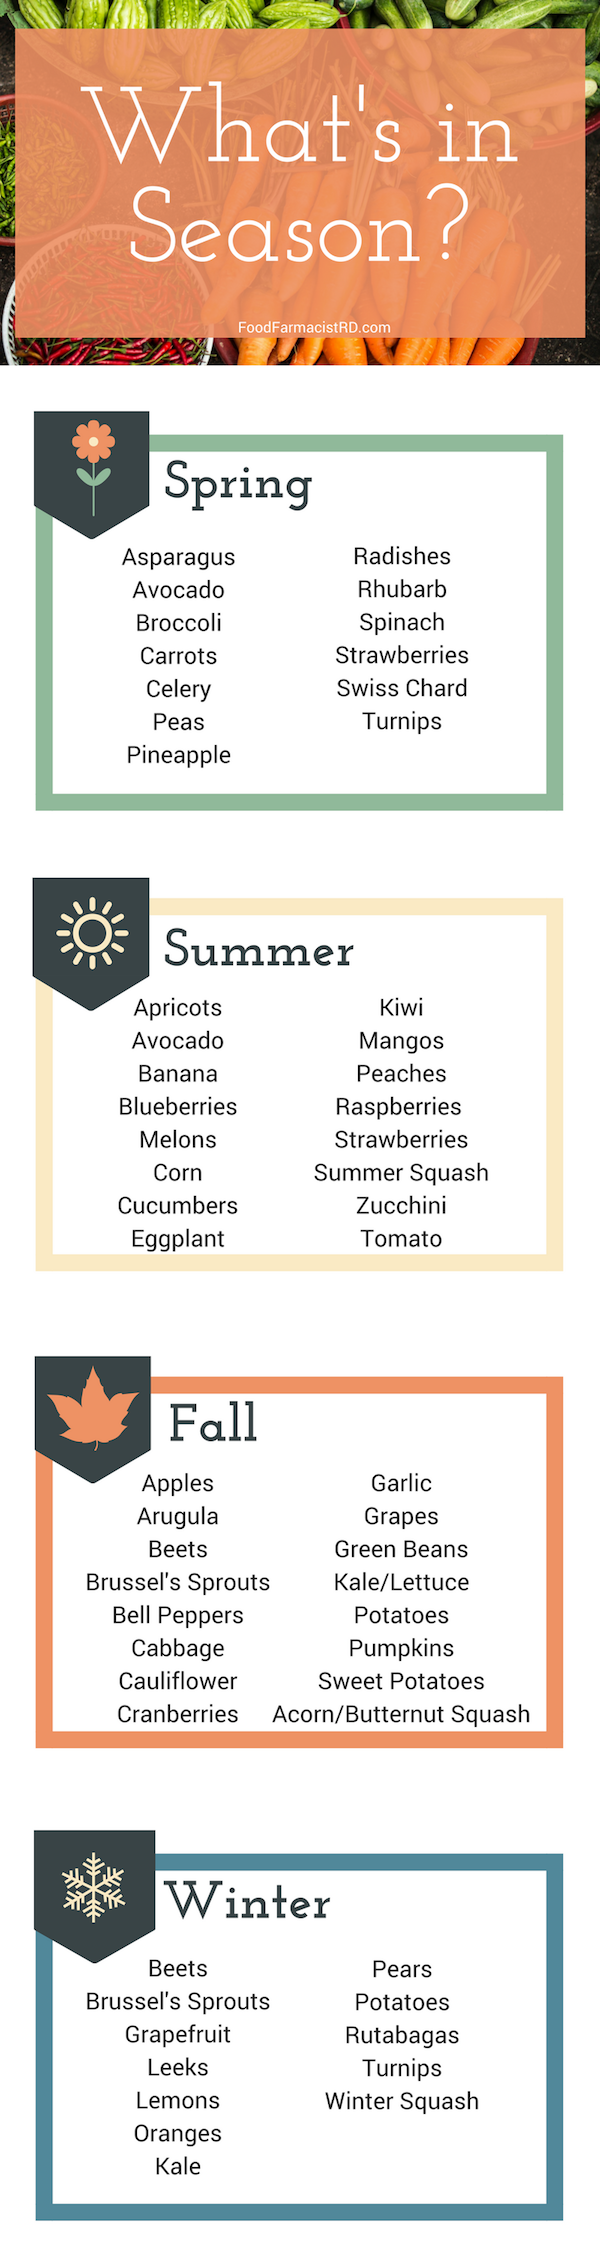 A seasonal produce chart that encourages eating seasonally